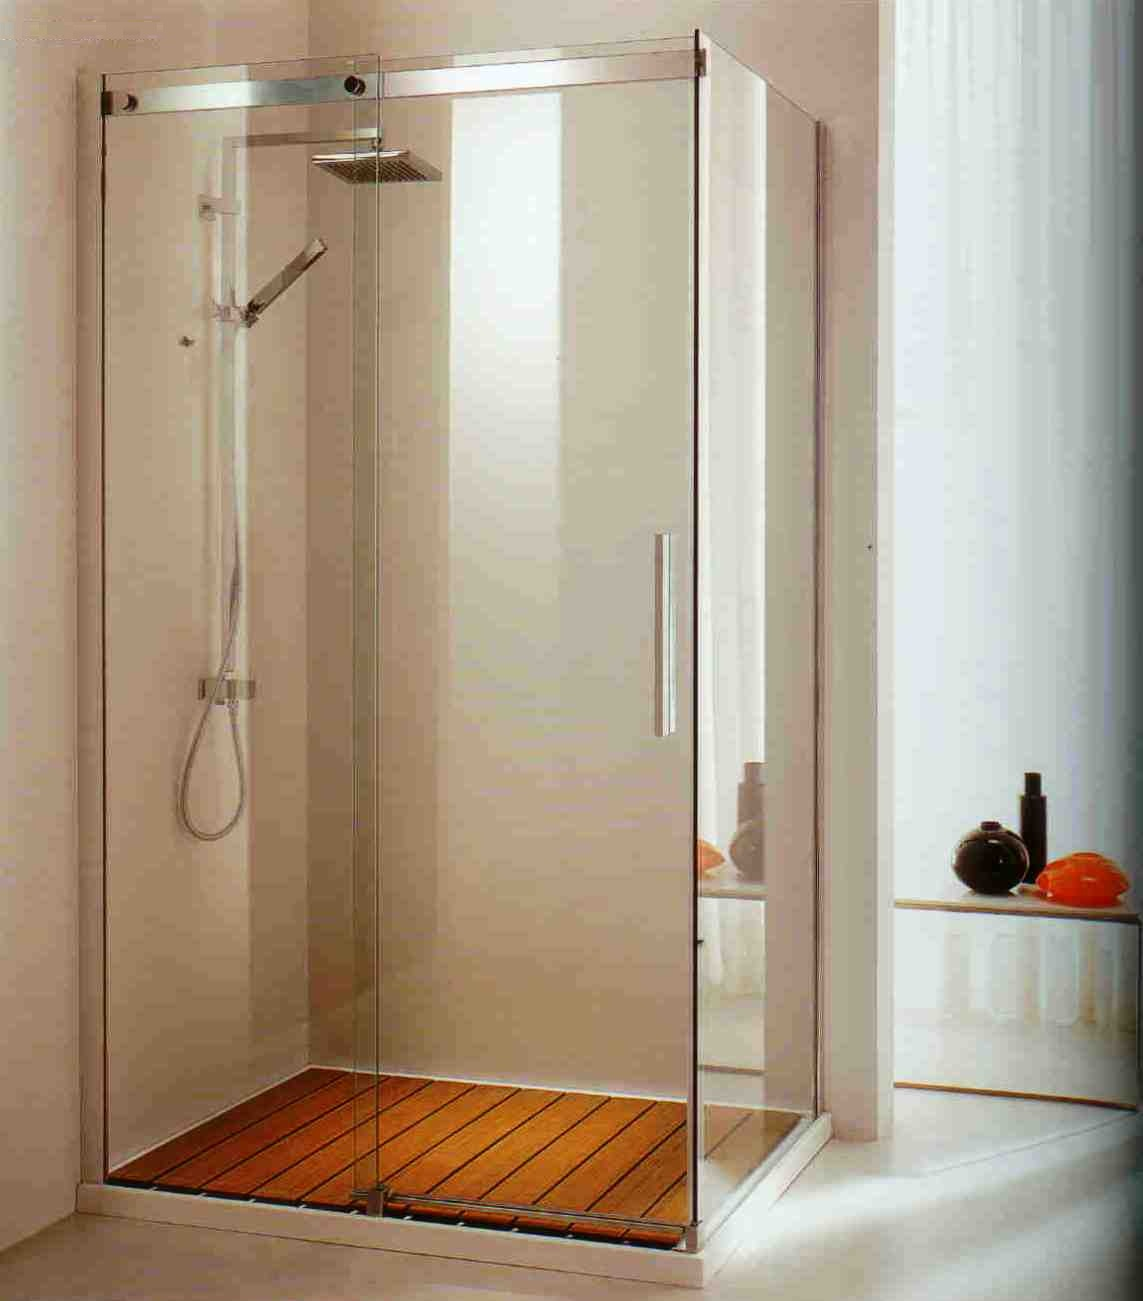 See Installation Instructions Odele Shower set